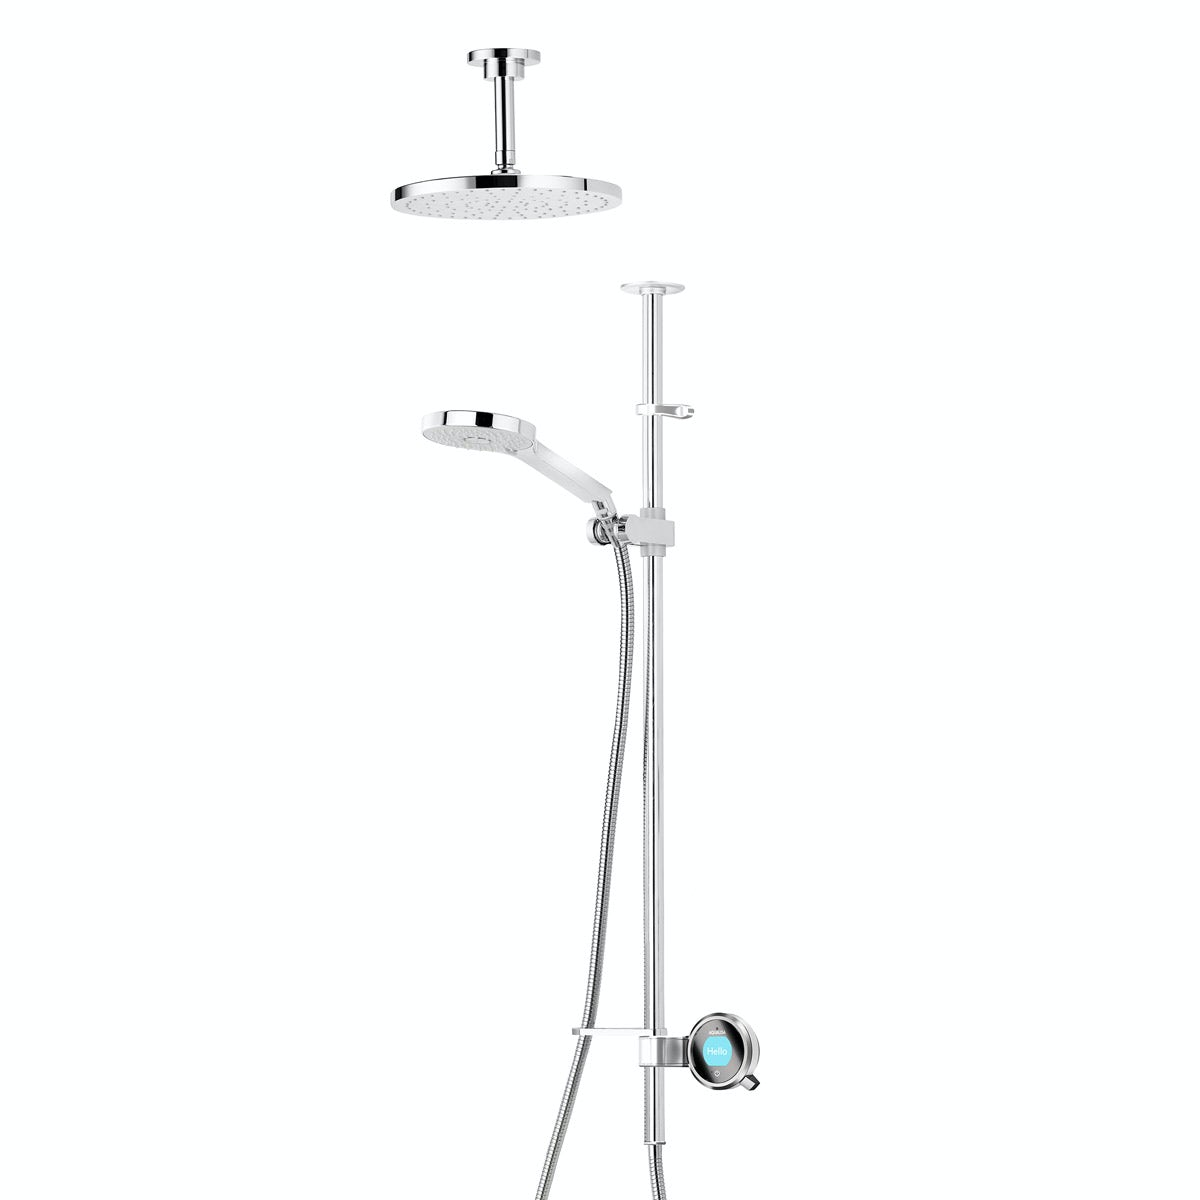 Aqualisa Q exposed digital shower pumped with slider rail and ceiling arm